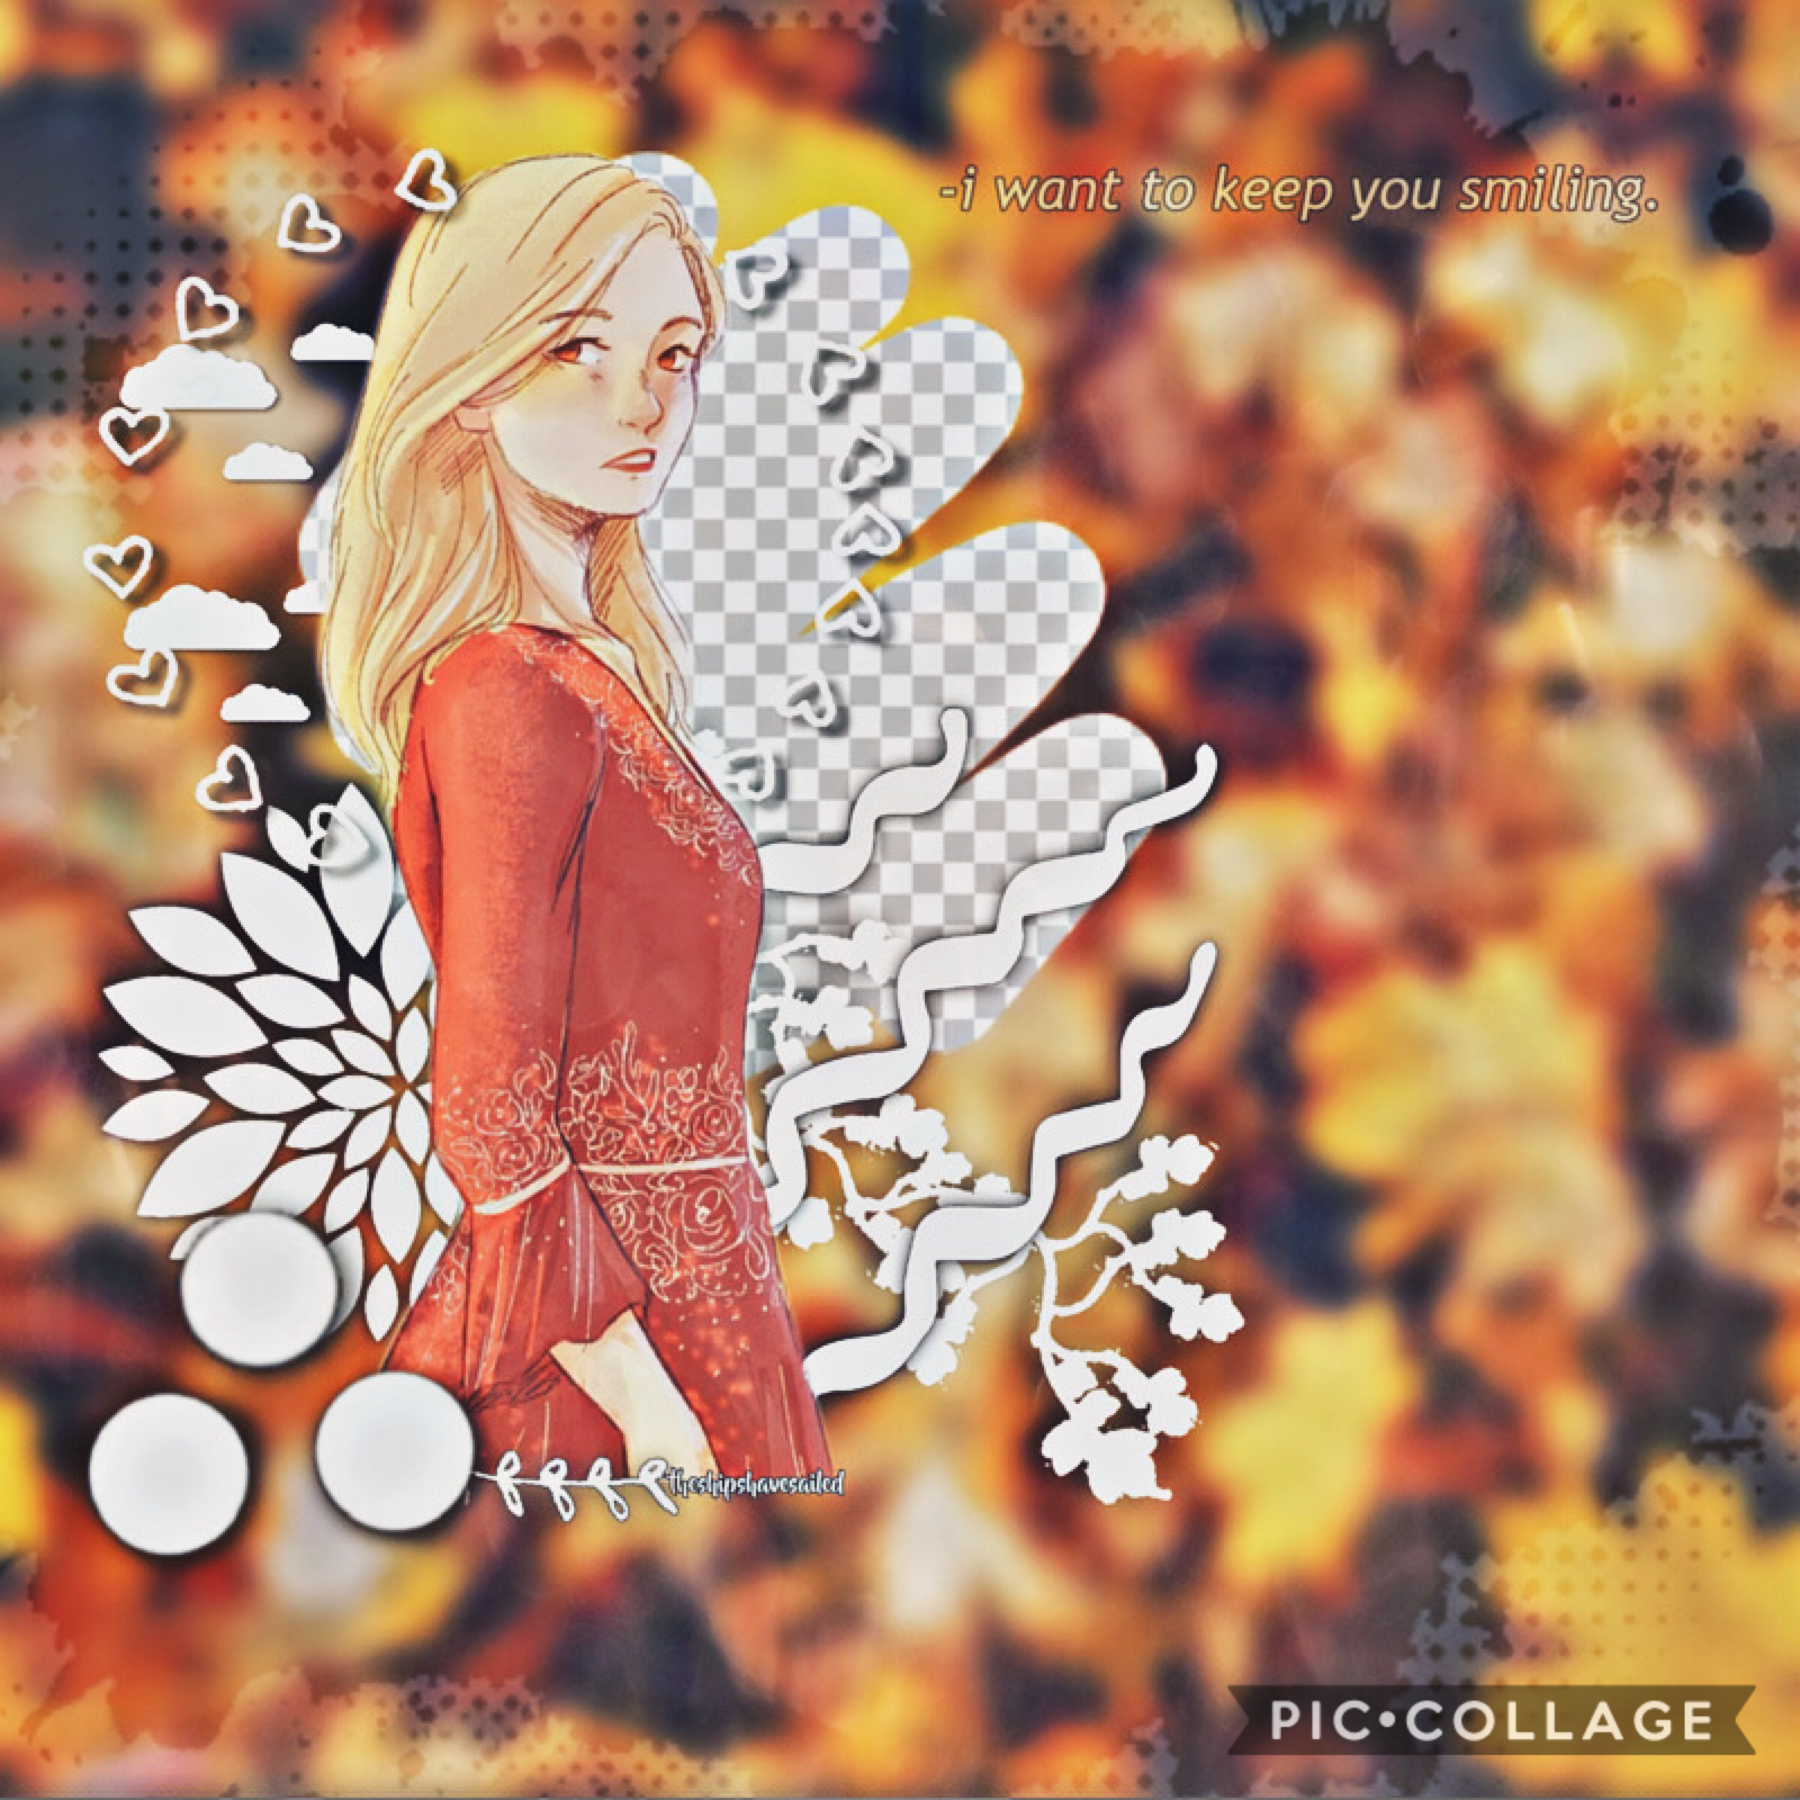 🤎Made on PicsArt🤎  KOTLC Sophie edit! I finished Neverseen last night and duuuuuuuuuuude (hehe not gonna go any further). Anyway how've y'all been? I know I haven't been active that much lately, but school and cheer is driving me nuts. Hope y'all have a g